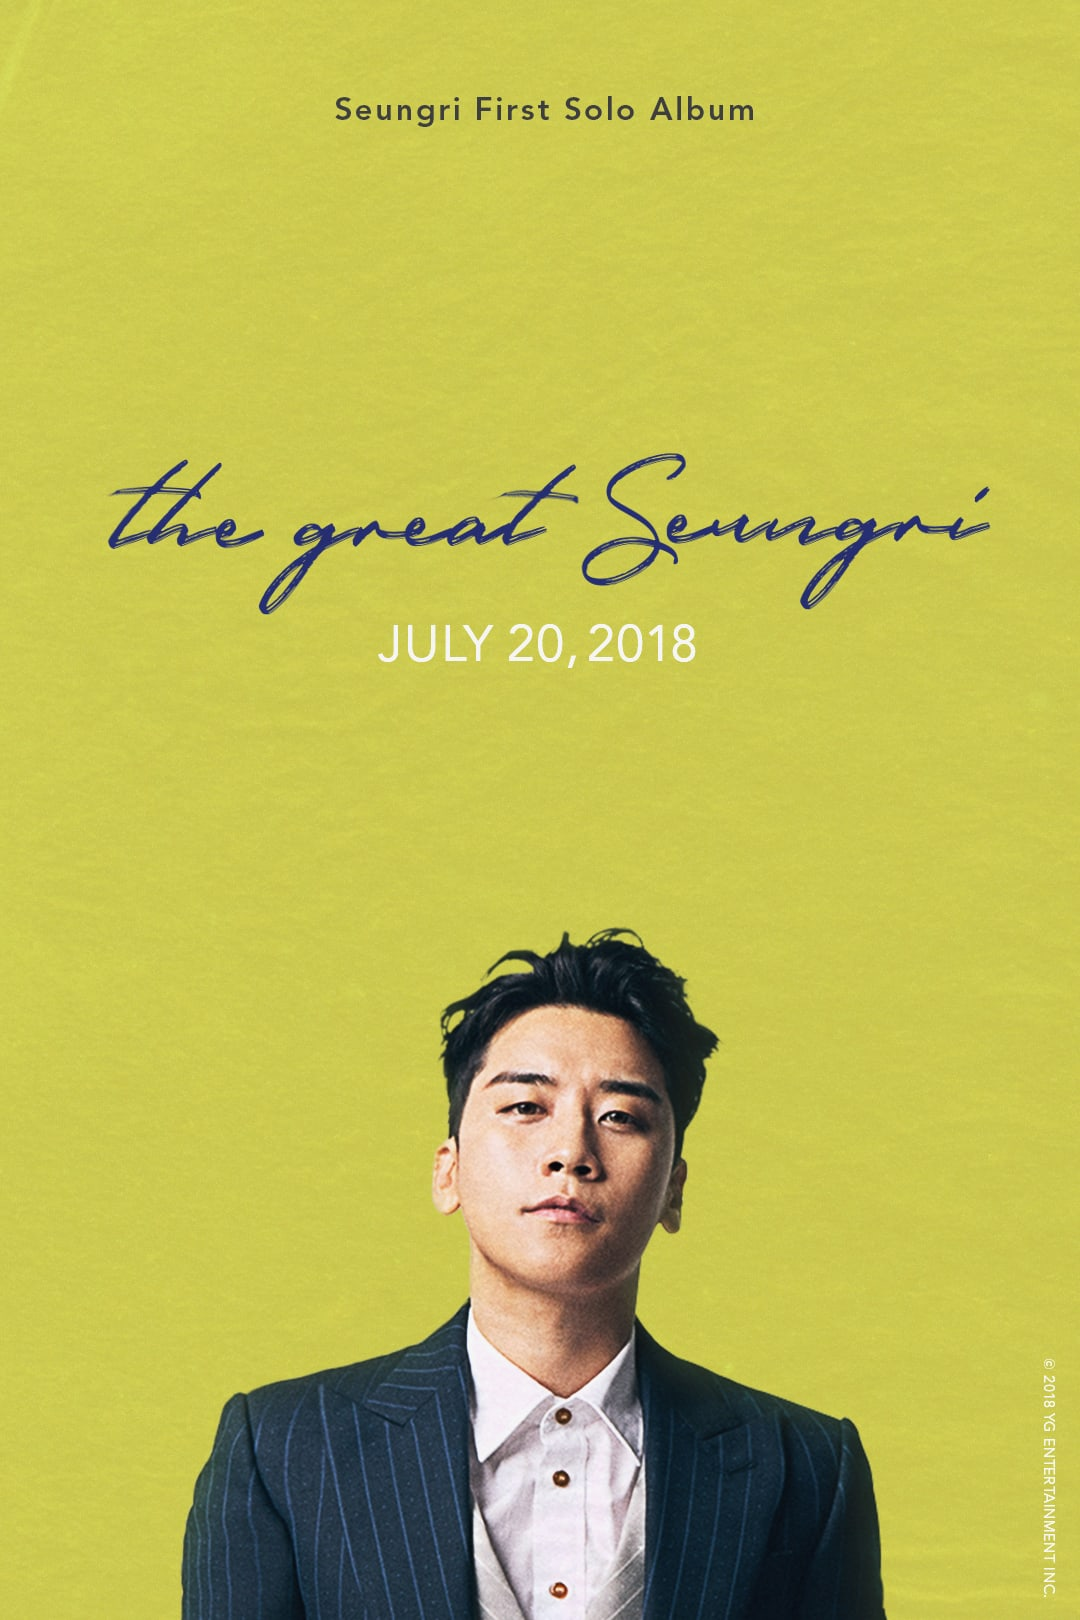 The Great Seungri akan menajdi album solo pertama Seungri Bigbang nih Teens (dok. YG Entertainment)